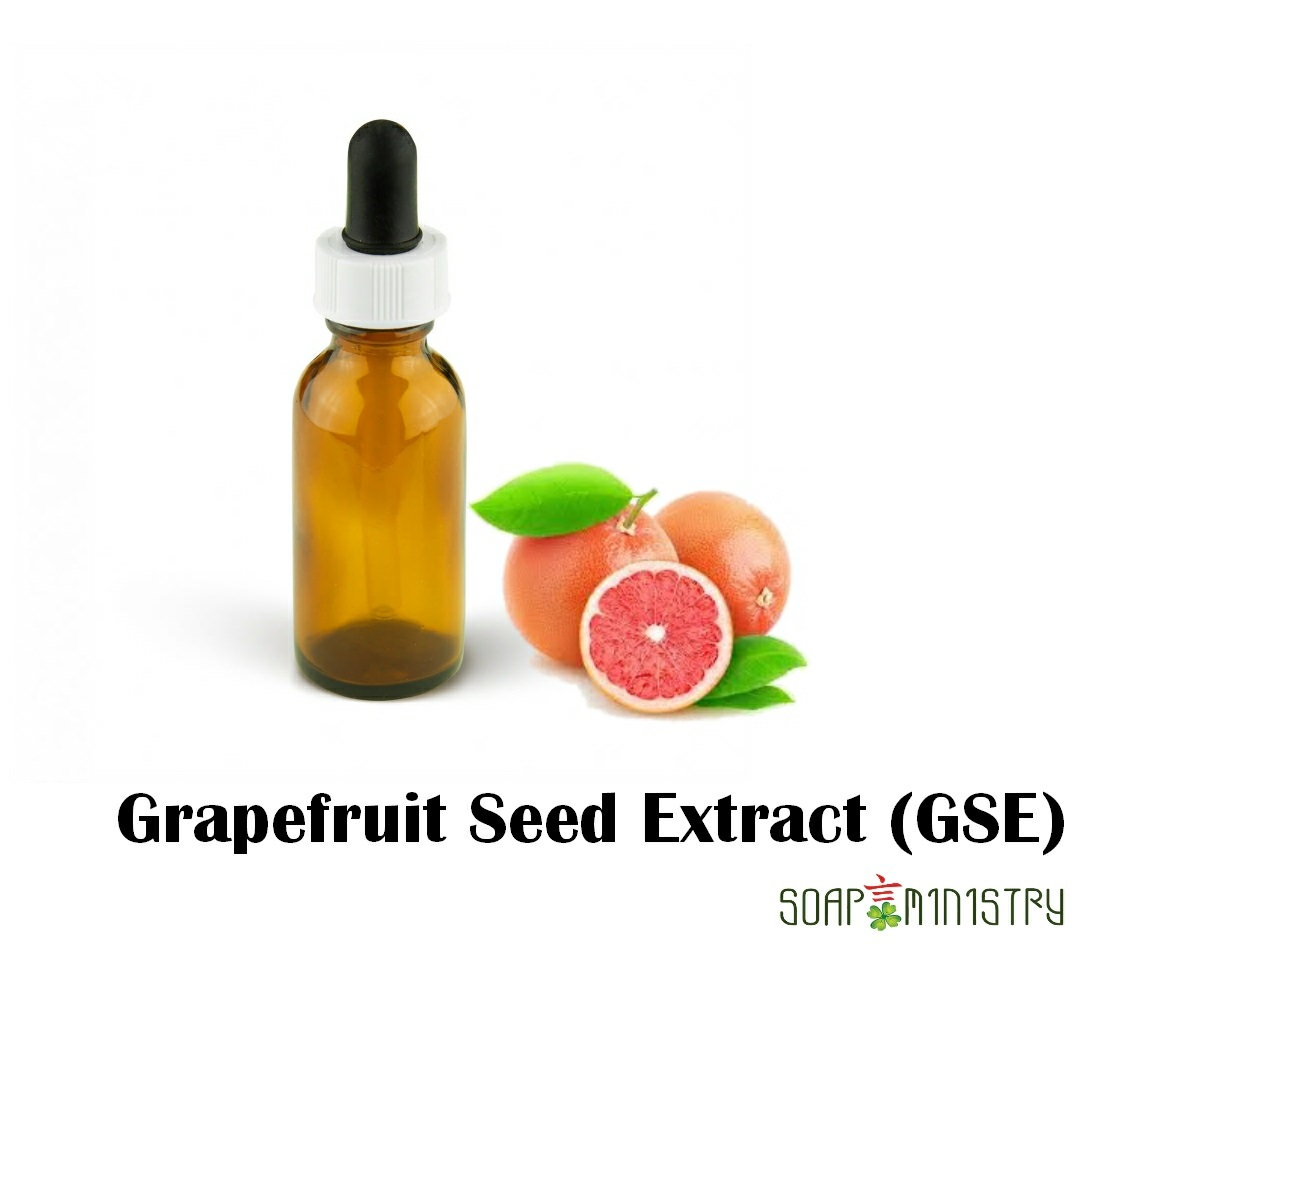 Grapefruit Seed Extract (GSE) 15g